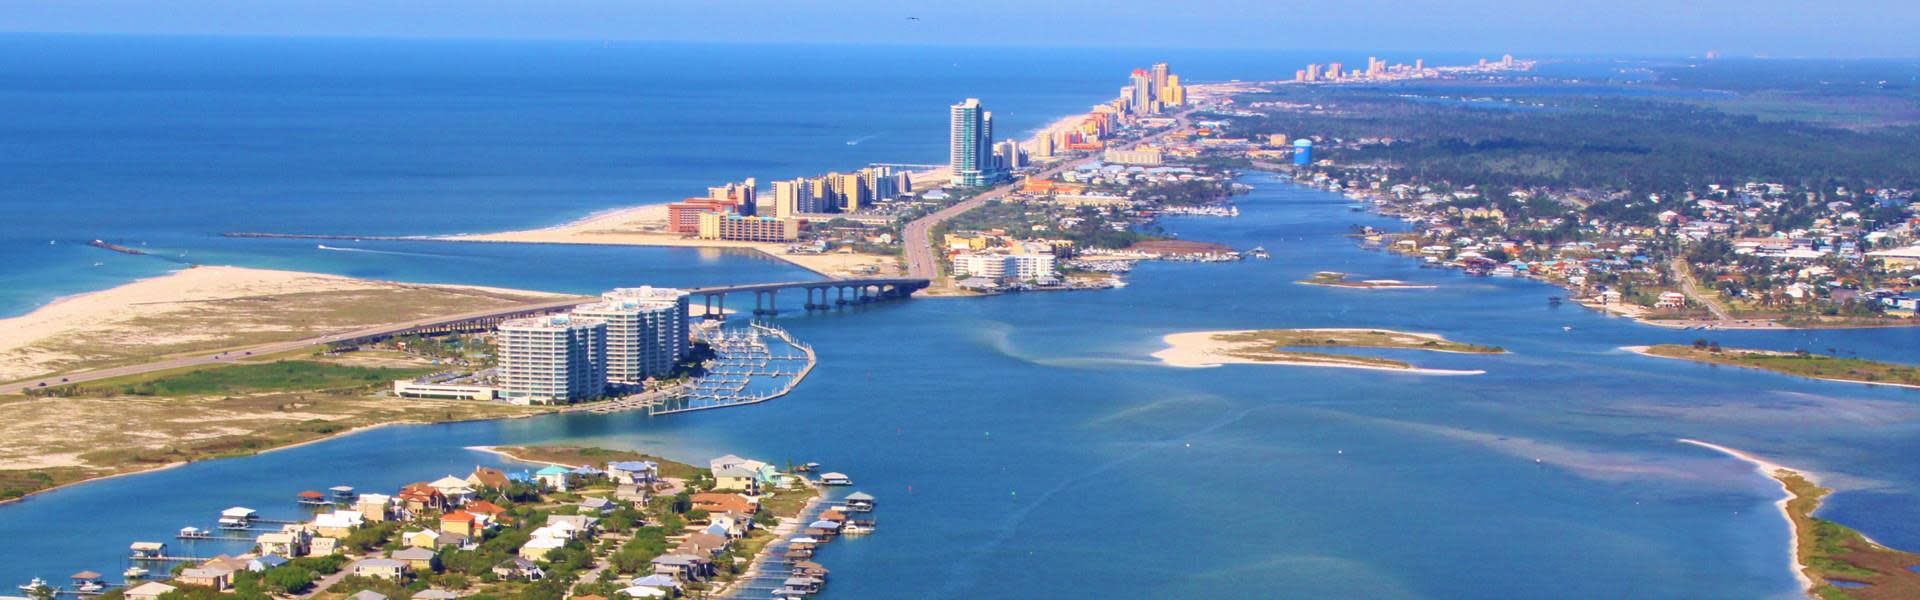 Gulf Coast Experience Tour by Lost Bay Helicopters